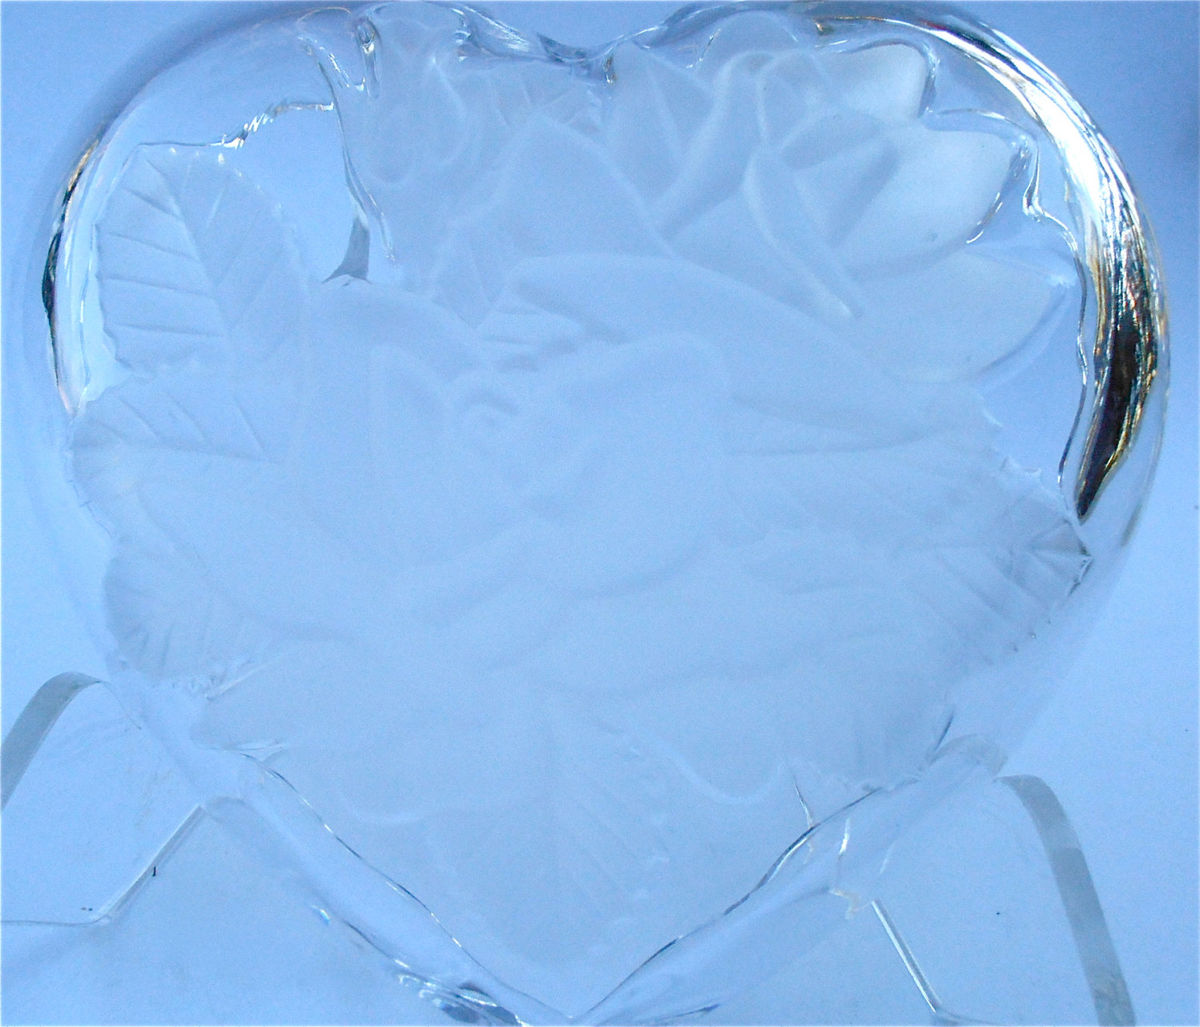 Vintage Heart Bowl Heart Crystal Bowl Vintage Mikasa Crystal Frosted Bowl Frosted Dish Mikasa Dish Crystal Candy Dish Crystal Jewelry Box - product images  of